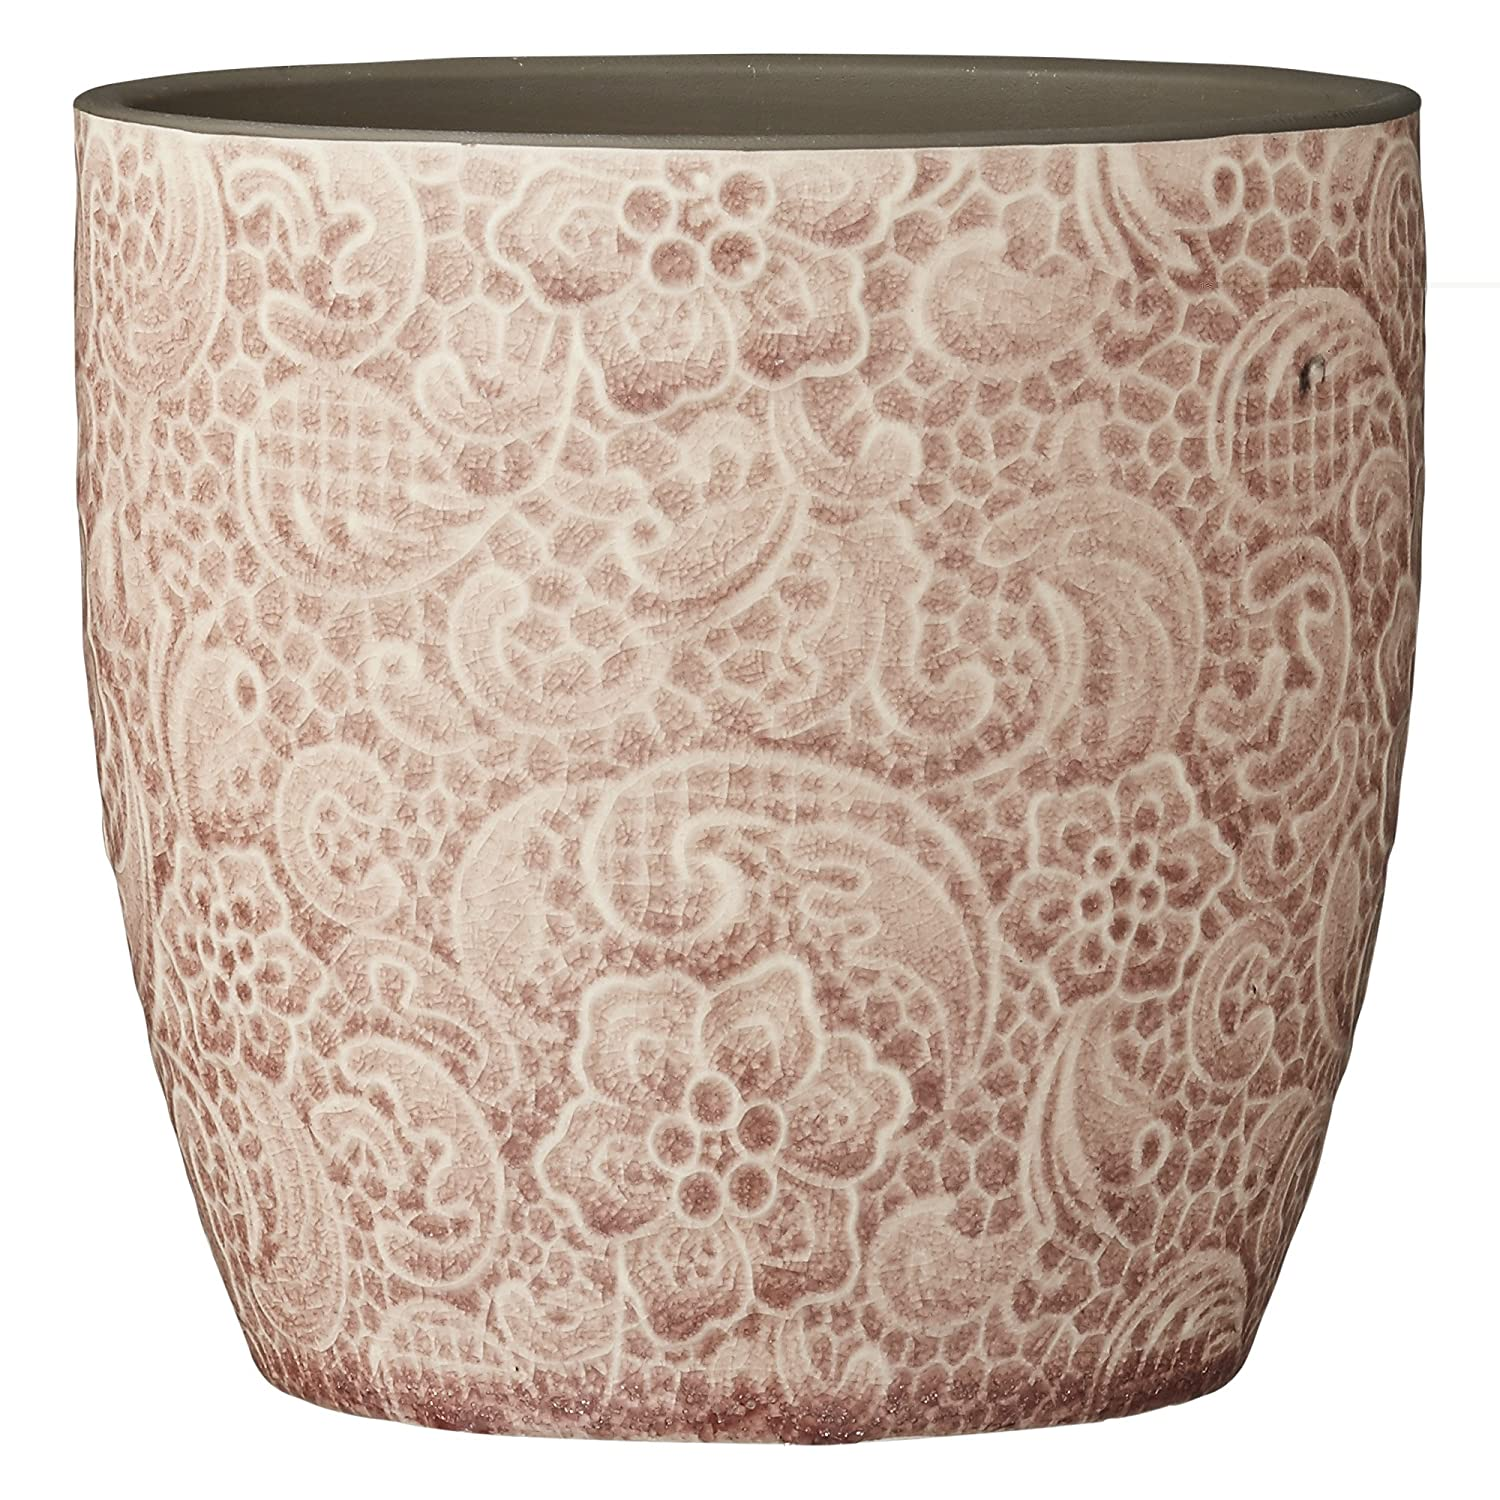 Lene Bjerre Moroccan Blush Round Mosaic Rana Flower Pot Decorative Crackle Glazed Scroll And Floral Pattern 13cm Tall